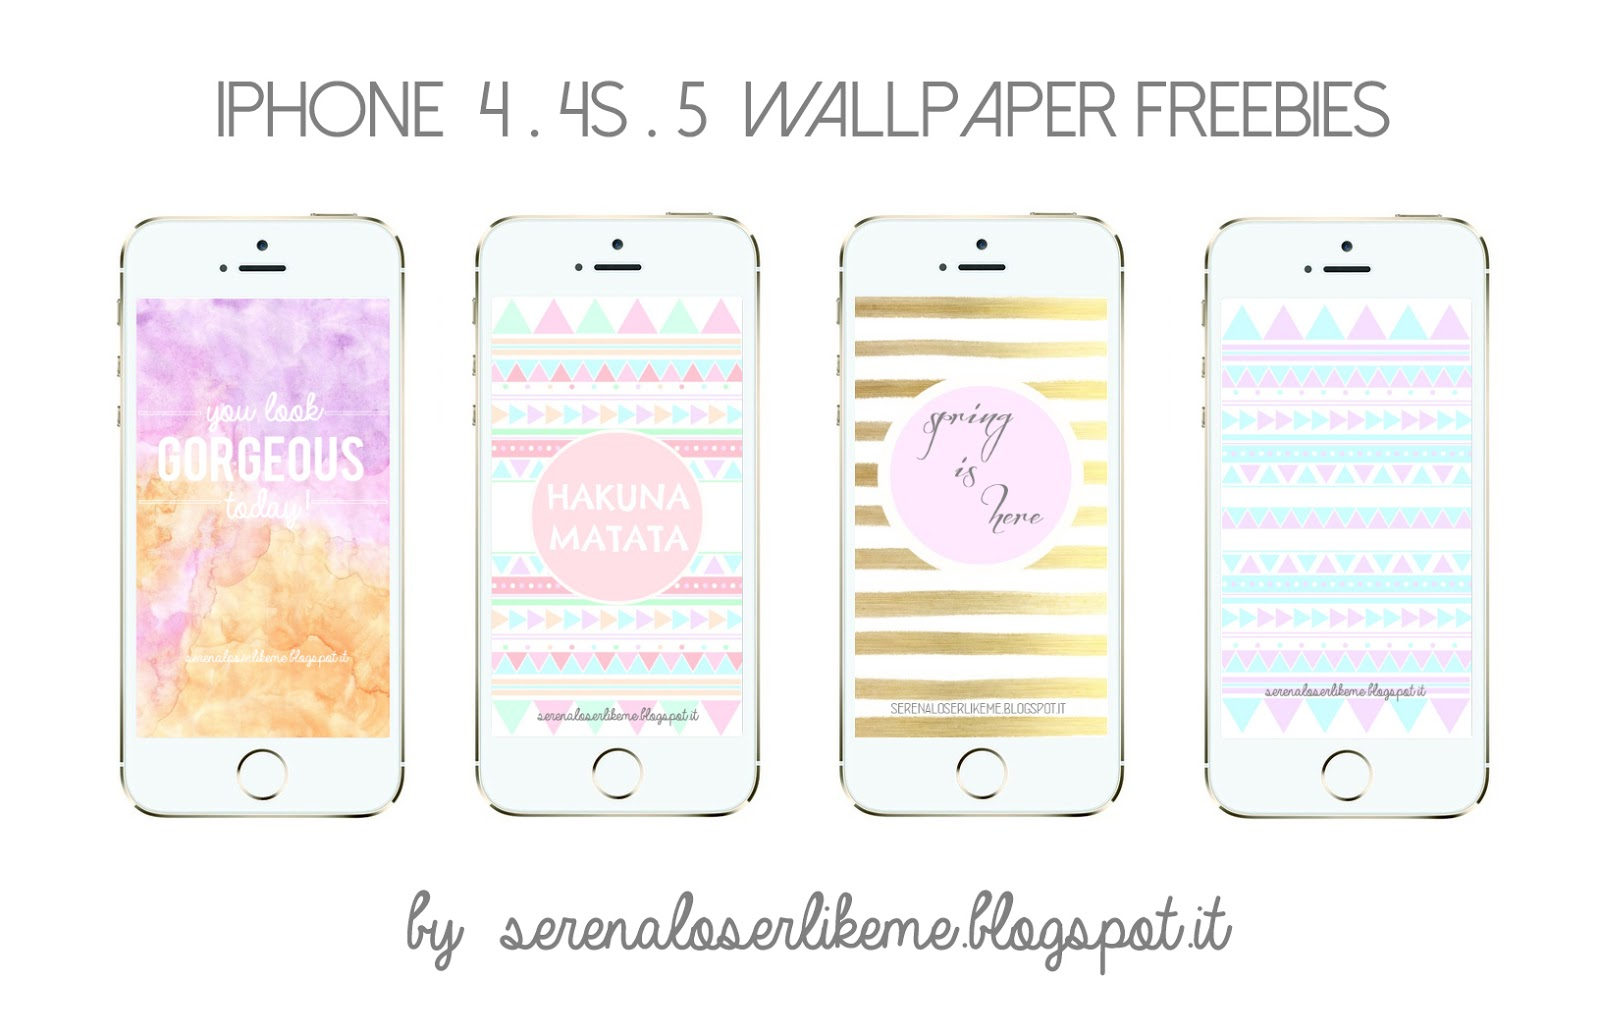 iphone 5 pages gratis